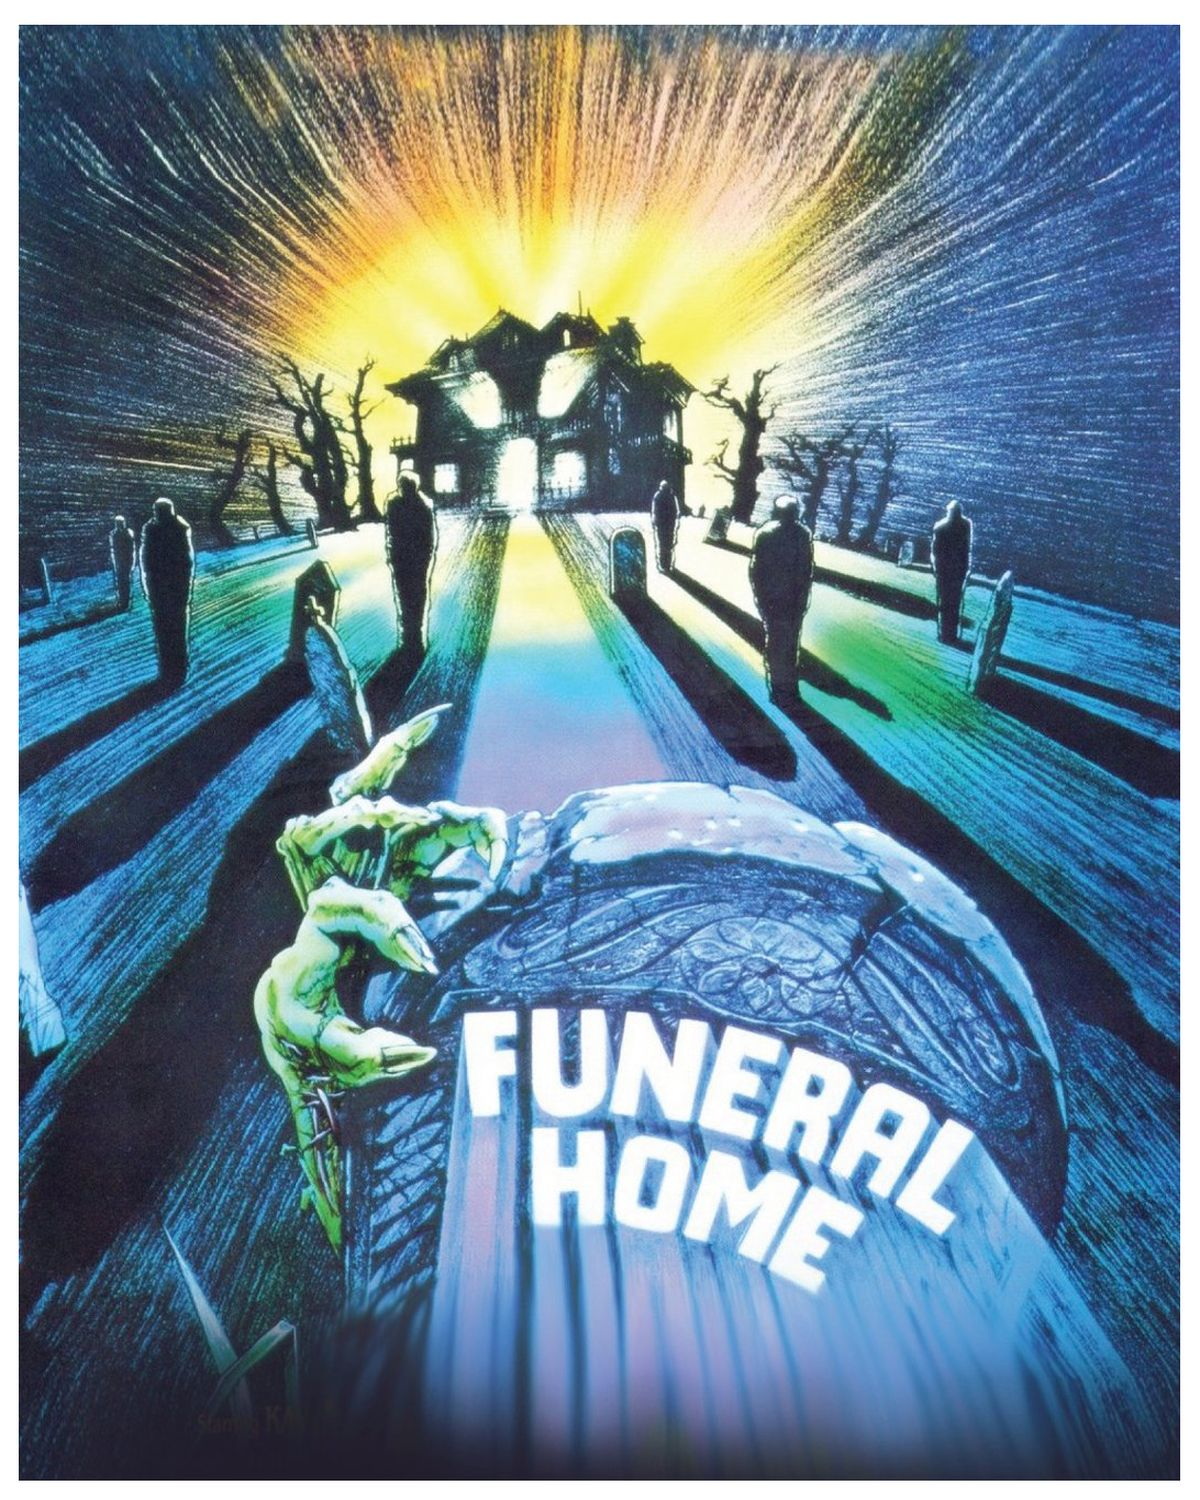 Funeral_Home_poster